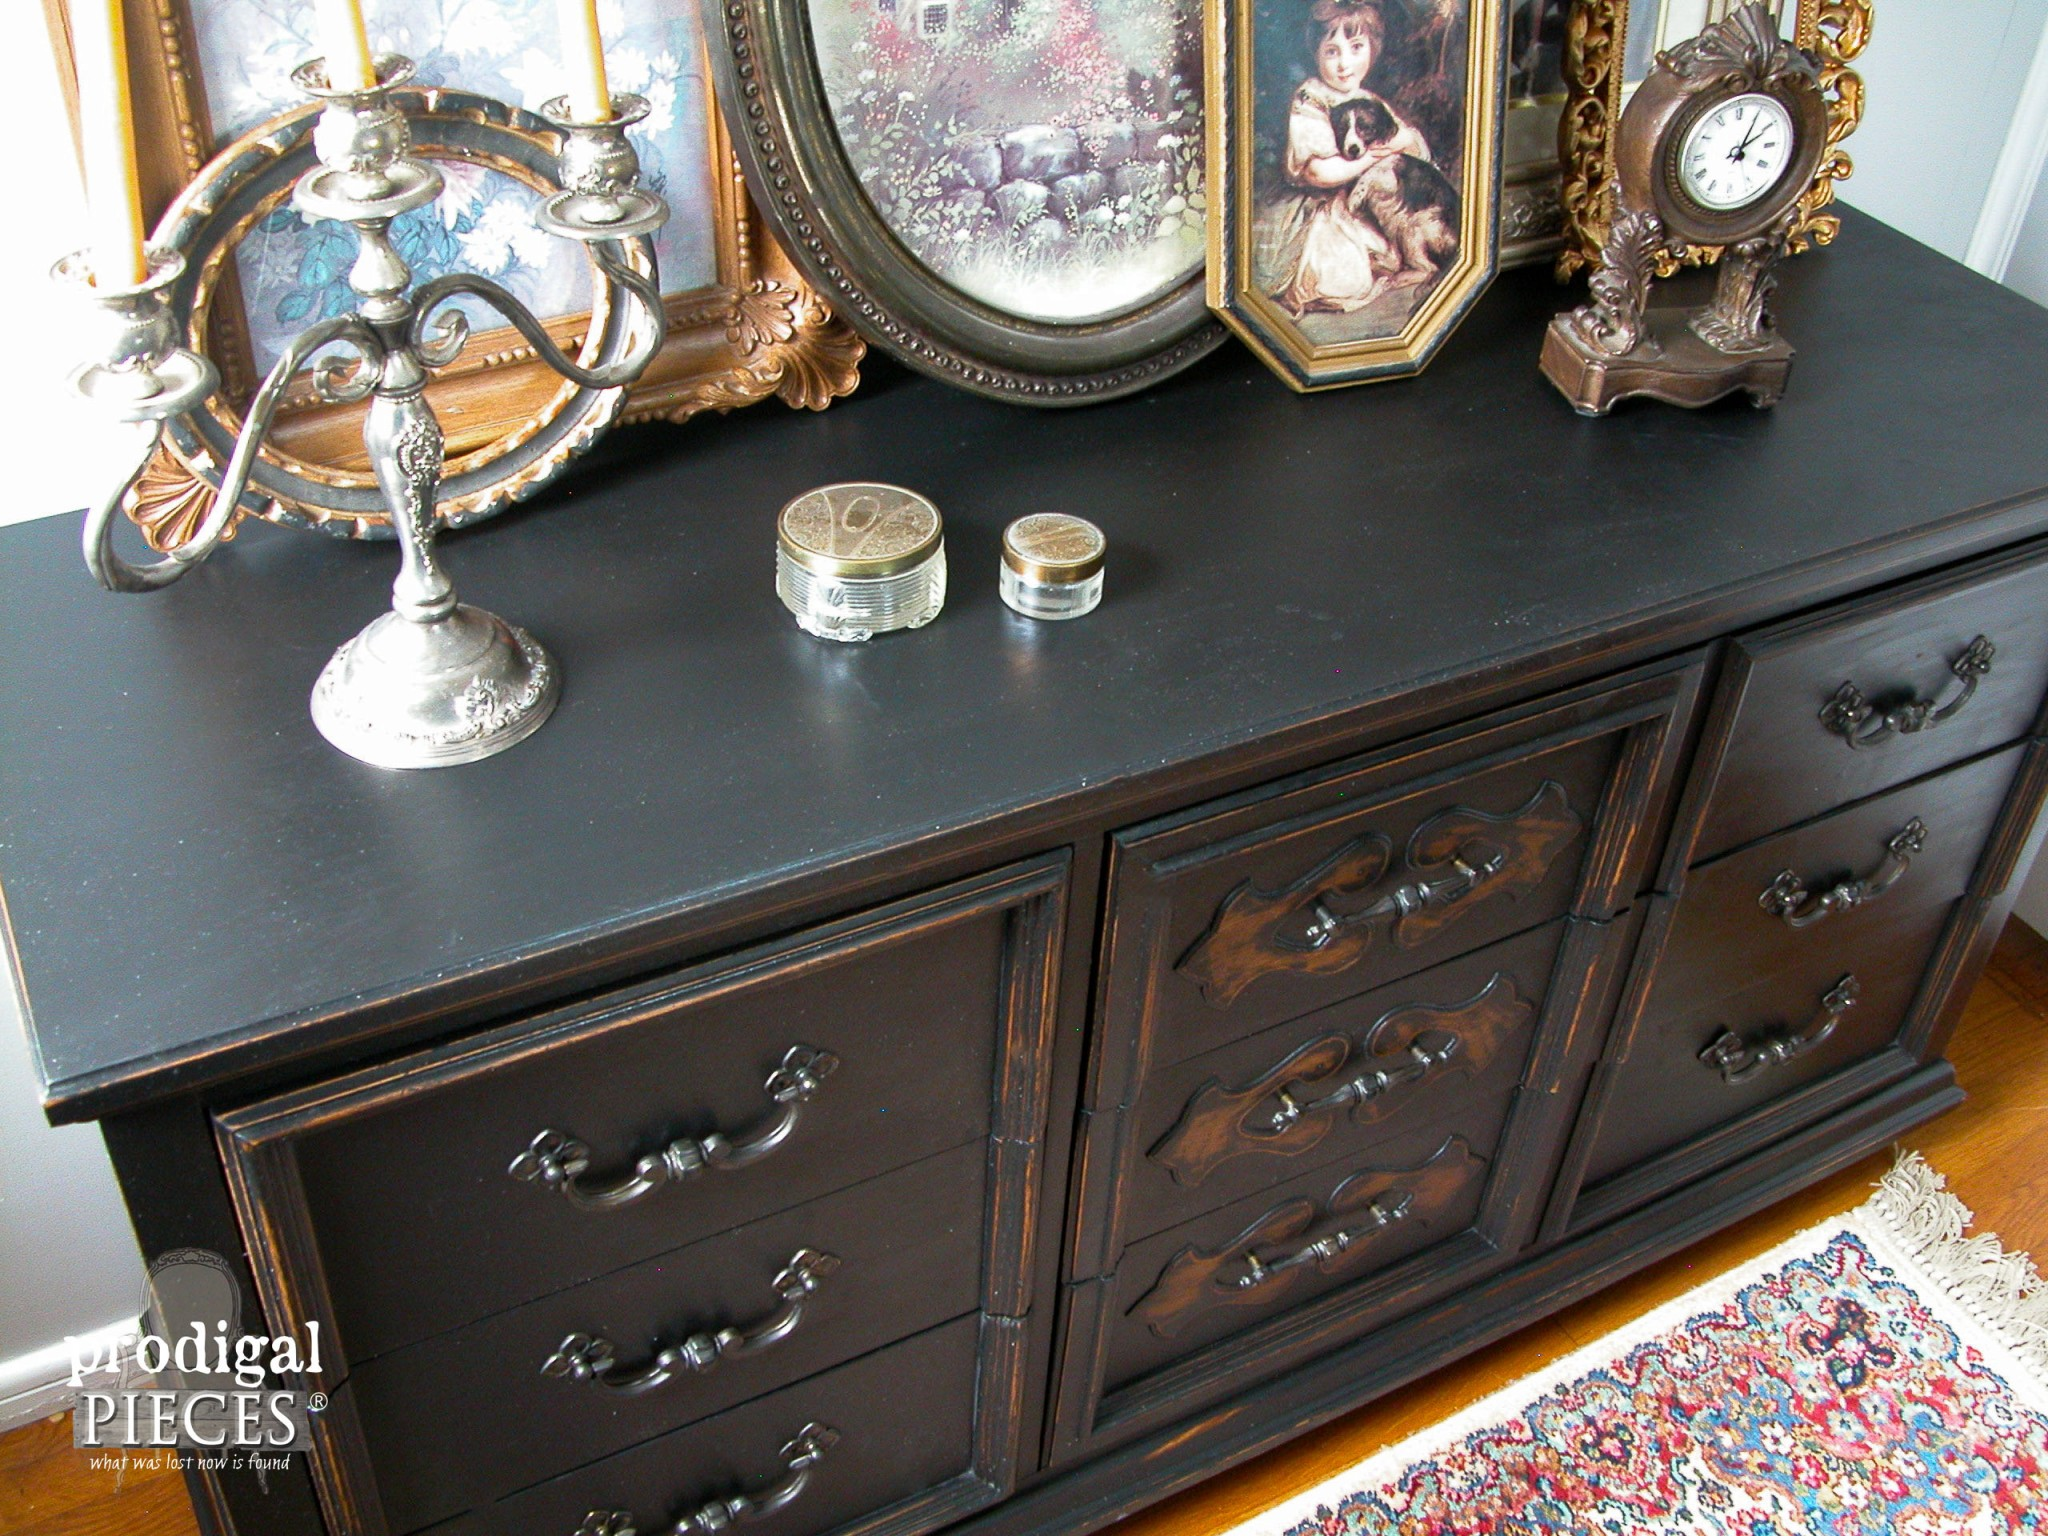 Top of Updated Mid Century Black Dresser | Prodigal Pieces | www.prodigalpieces.com